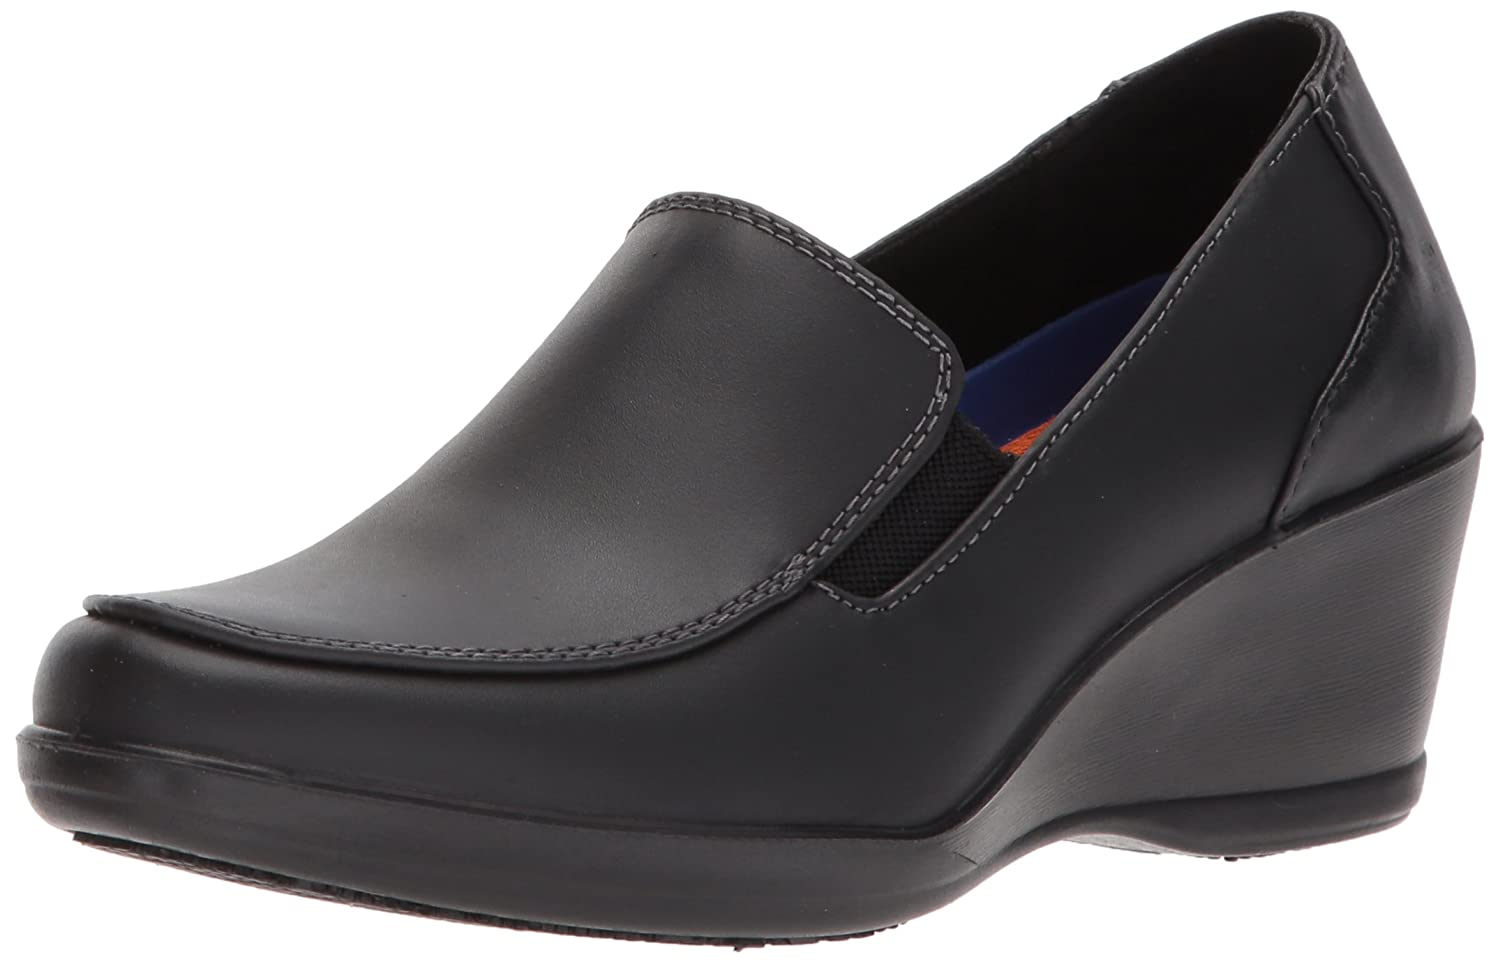 Dr. Scholl's Shoes Women's Glad Uniform Dress Dr. Scholl's Shoes Glad-W